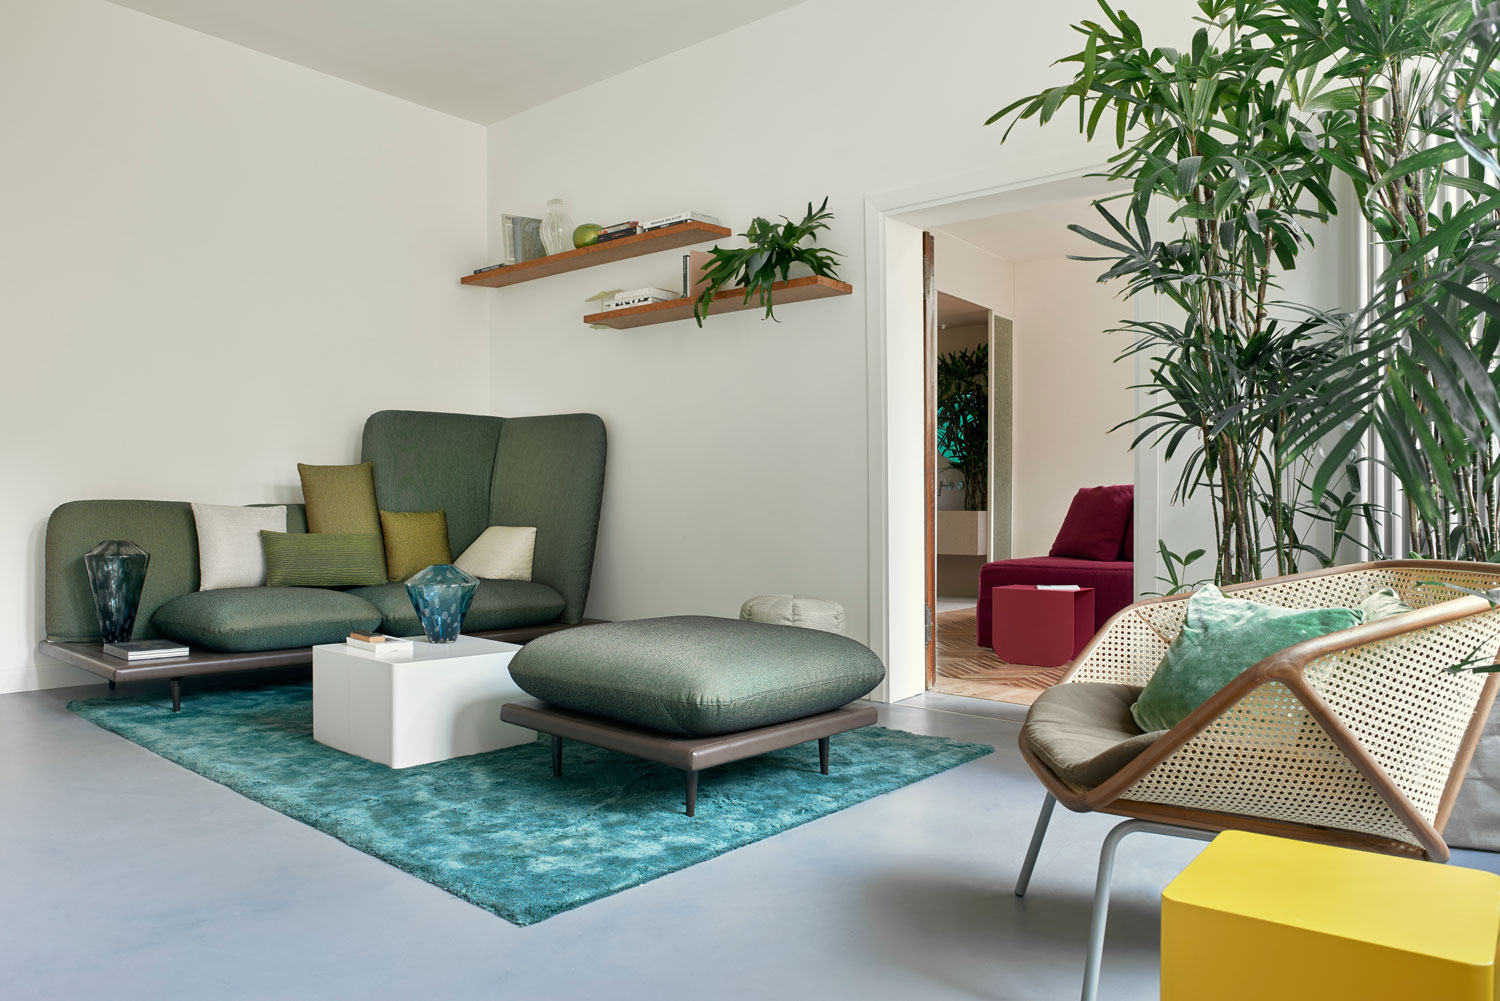 Casa flora design apartment in venice challenges for Design apartment venice